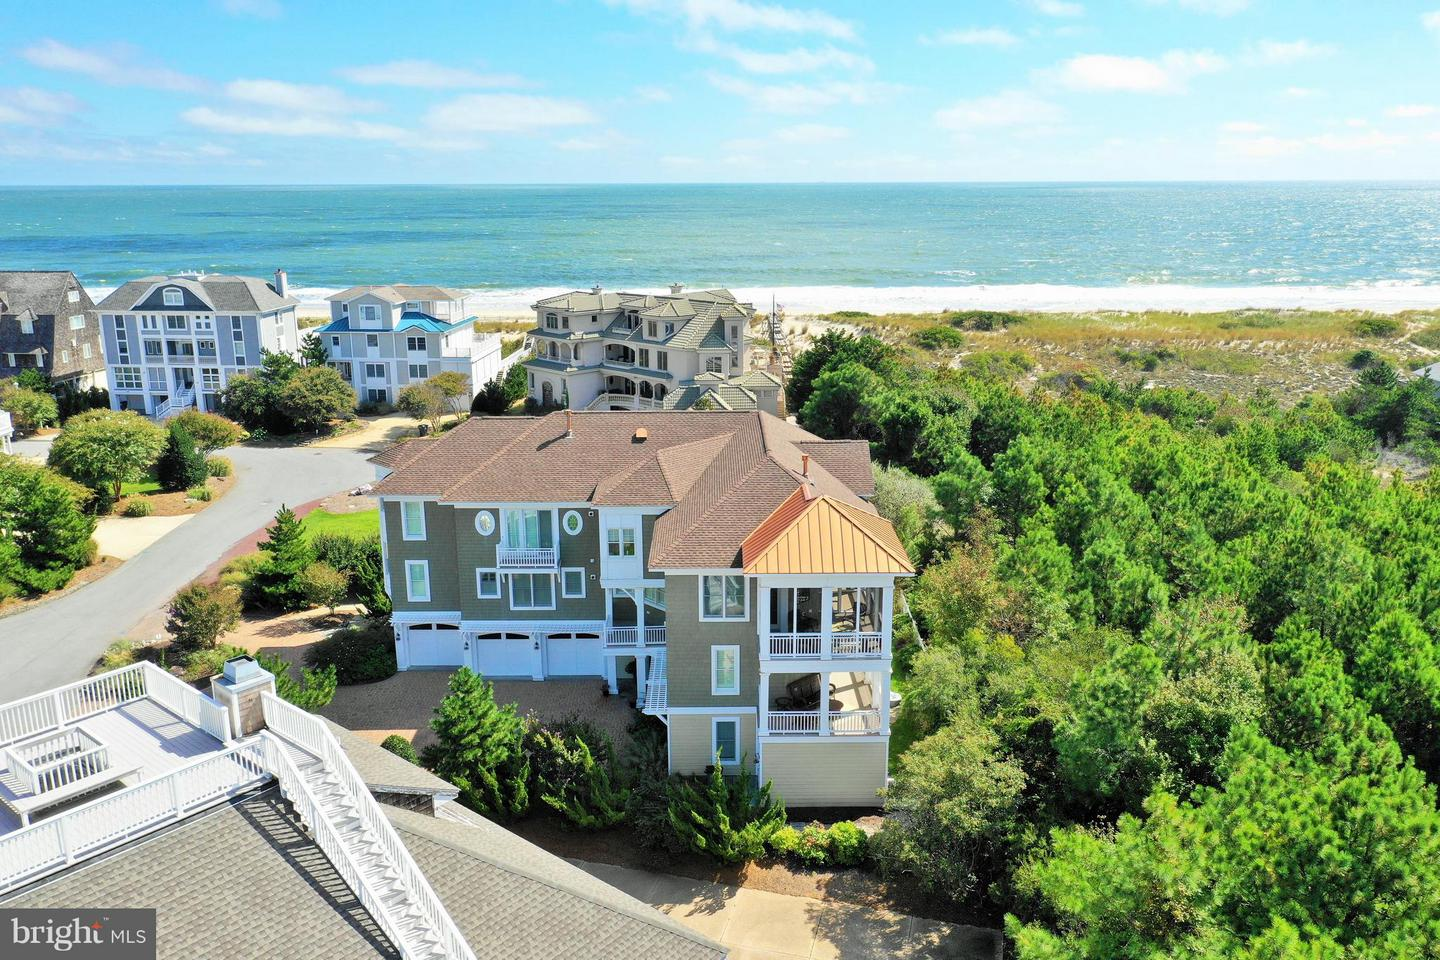 1002293530-300720129963-2018-09-25-15-08-25 31 Hall Ave | Rehoboth Beach, DE Real Estate For Sale | MLS# 1002293530  - Jack Lingo REALTOR